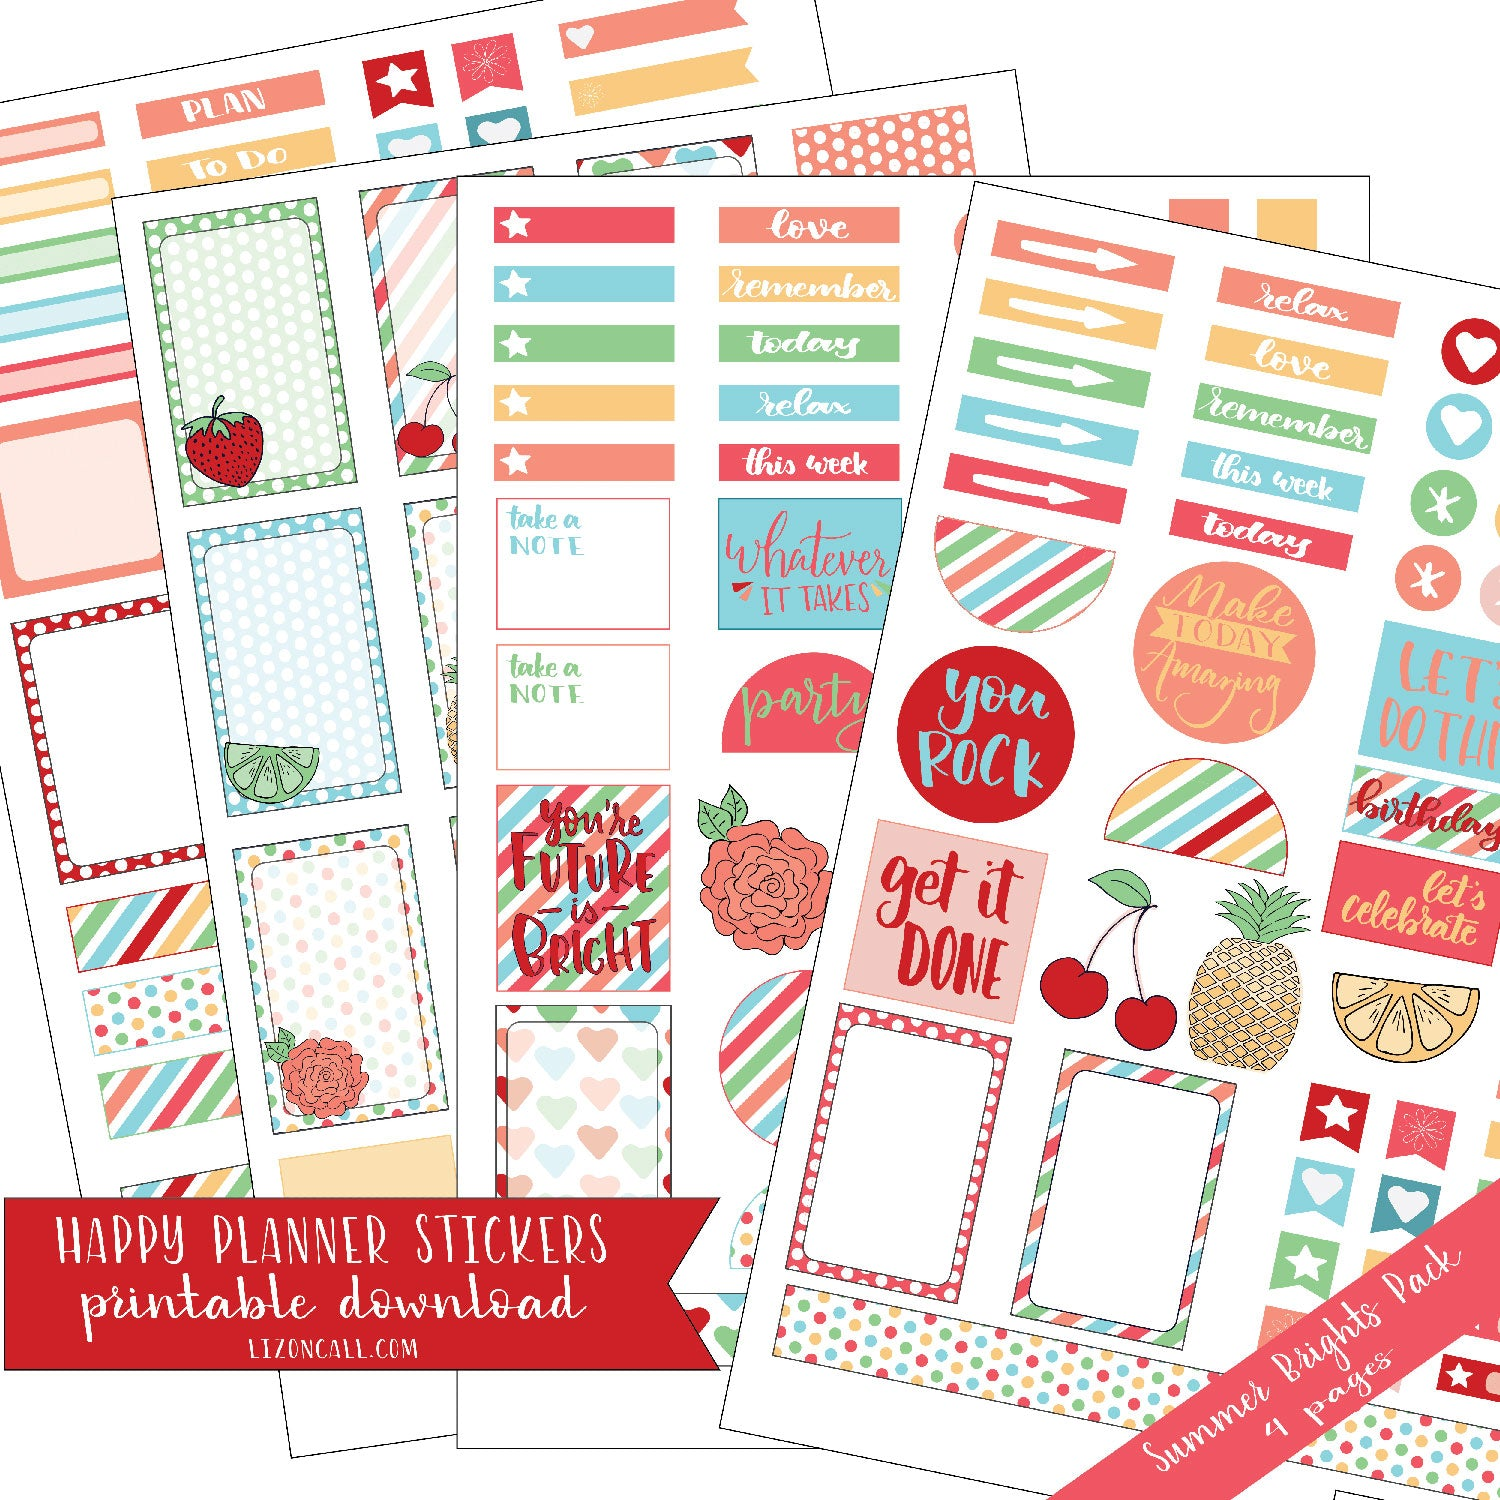 Happy Planner Stickers - Summer Brights Pack